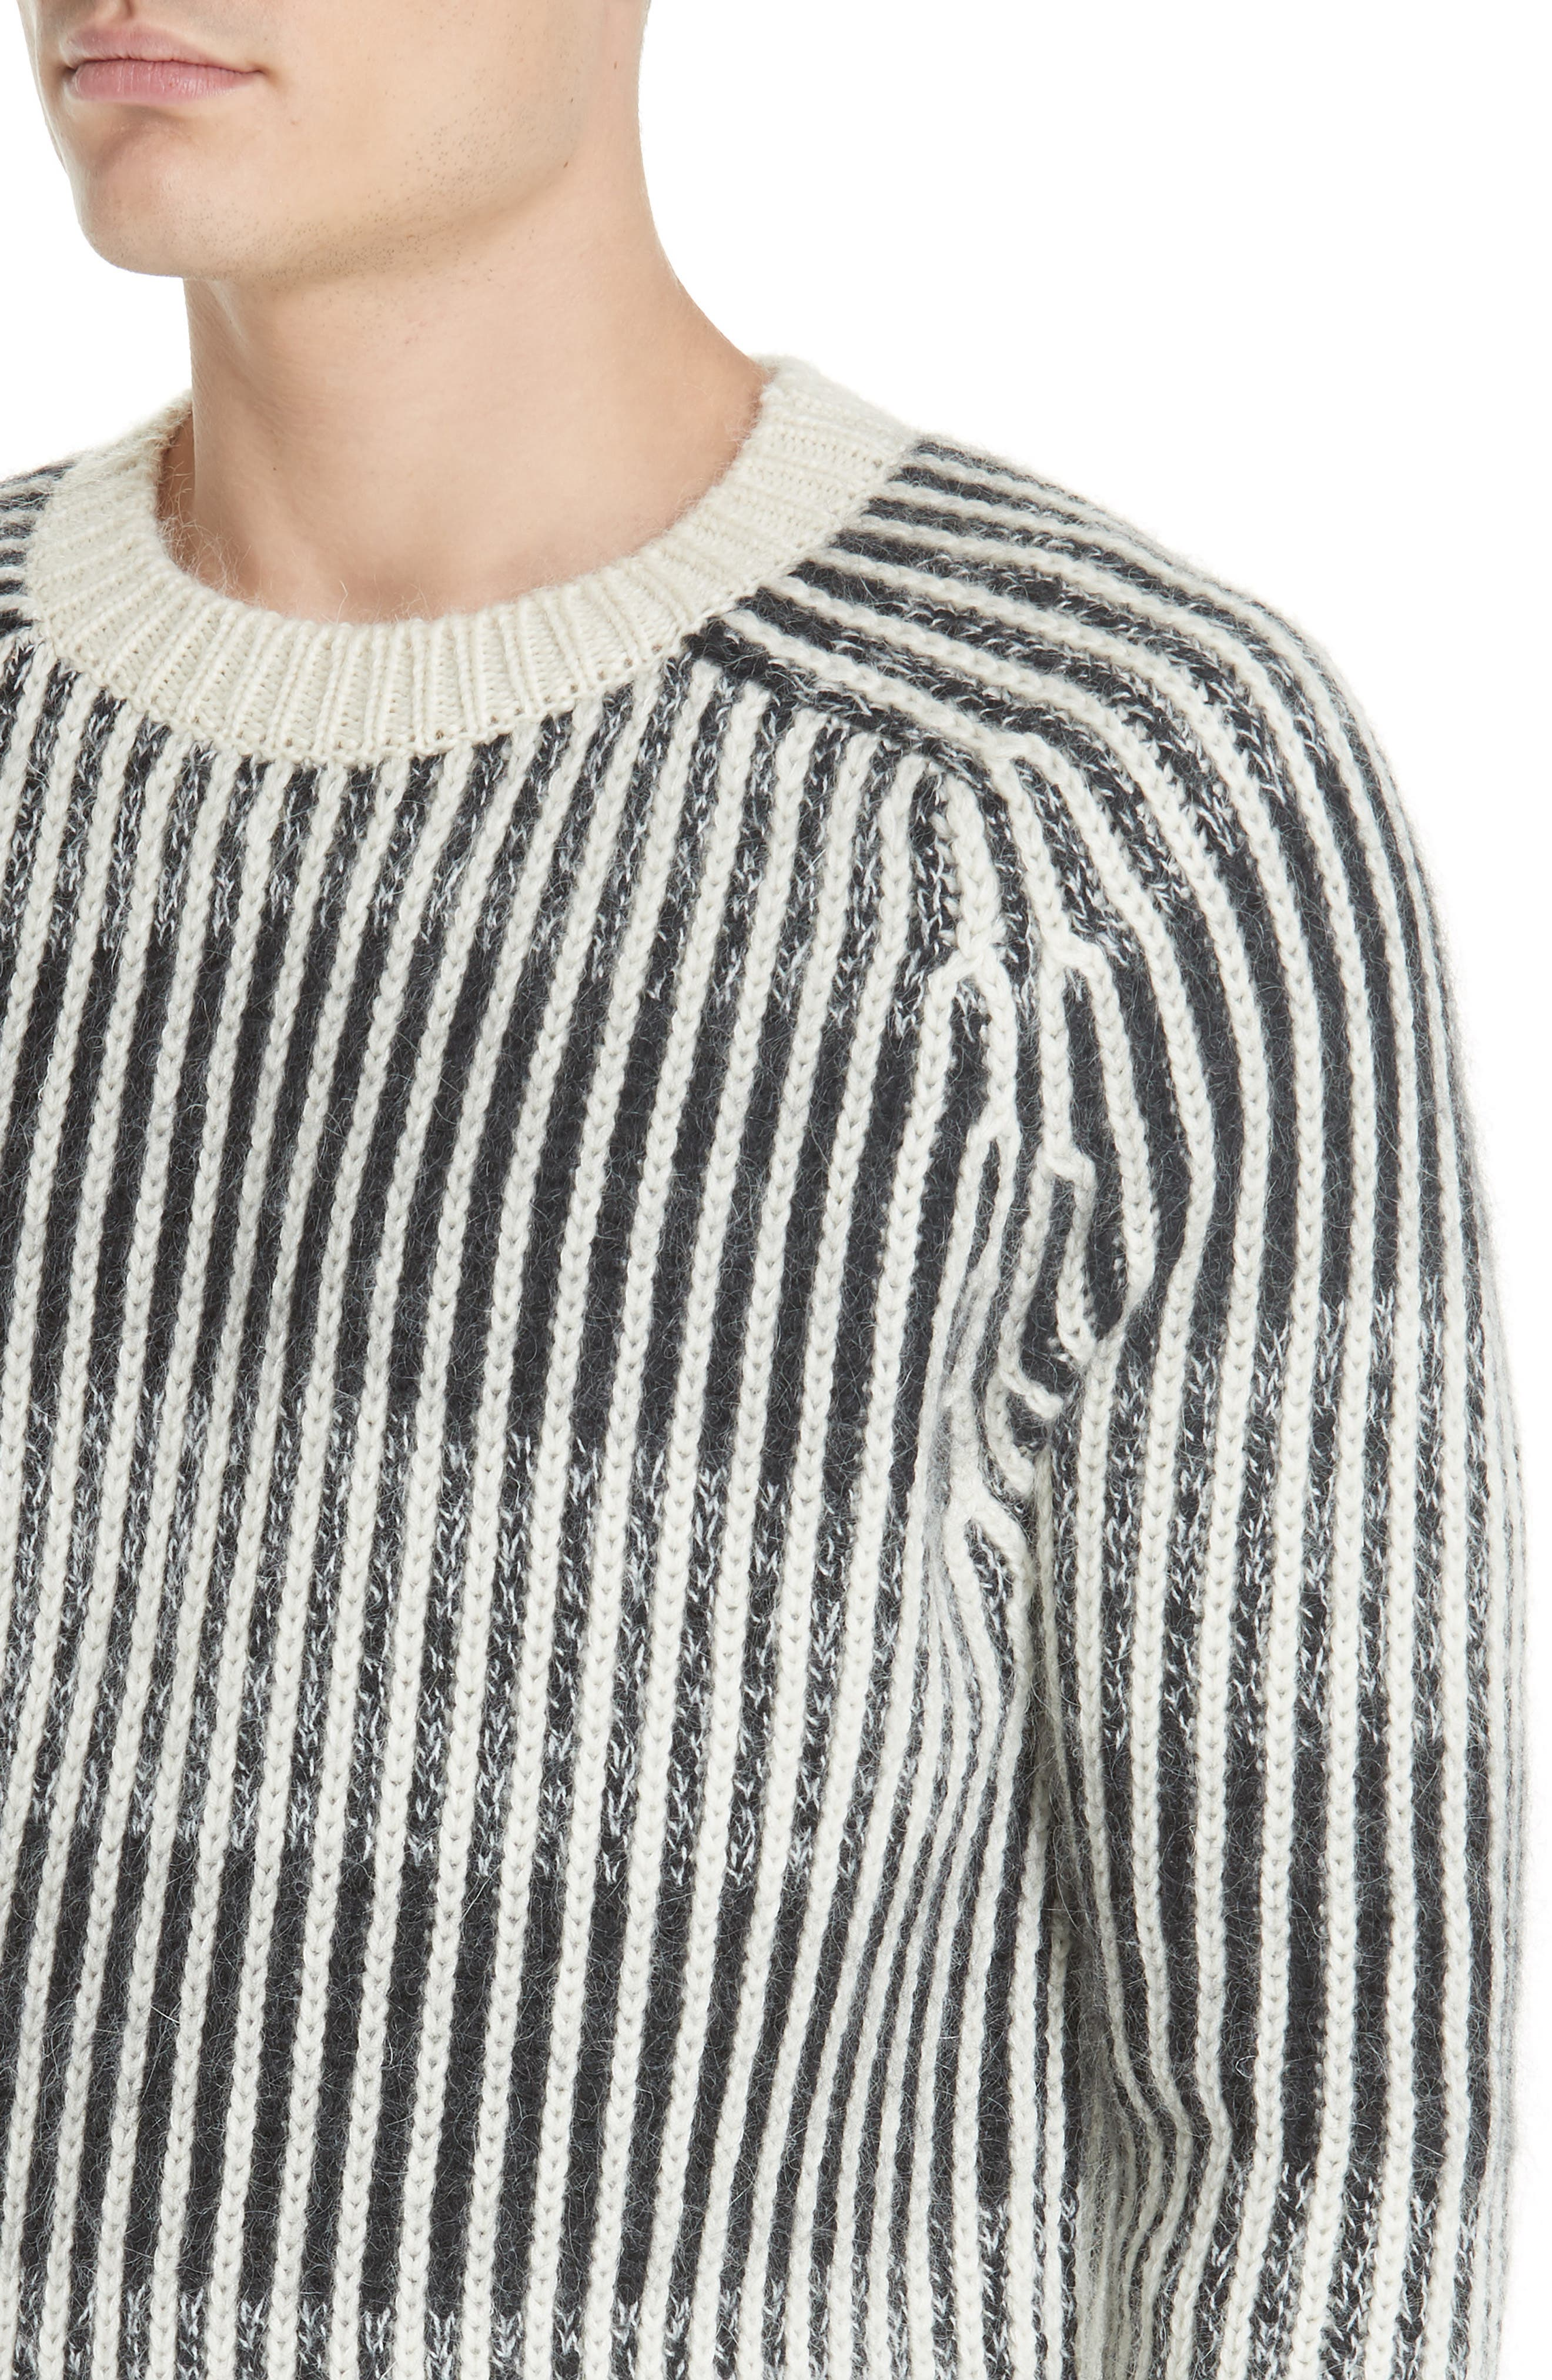 SAINT LAURENT,                             Contrast Rib Wool & Alpaca Blend Sweater,                             Alternate thumbnail 4, color,                             134